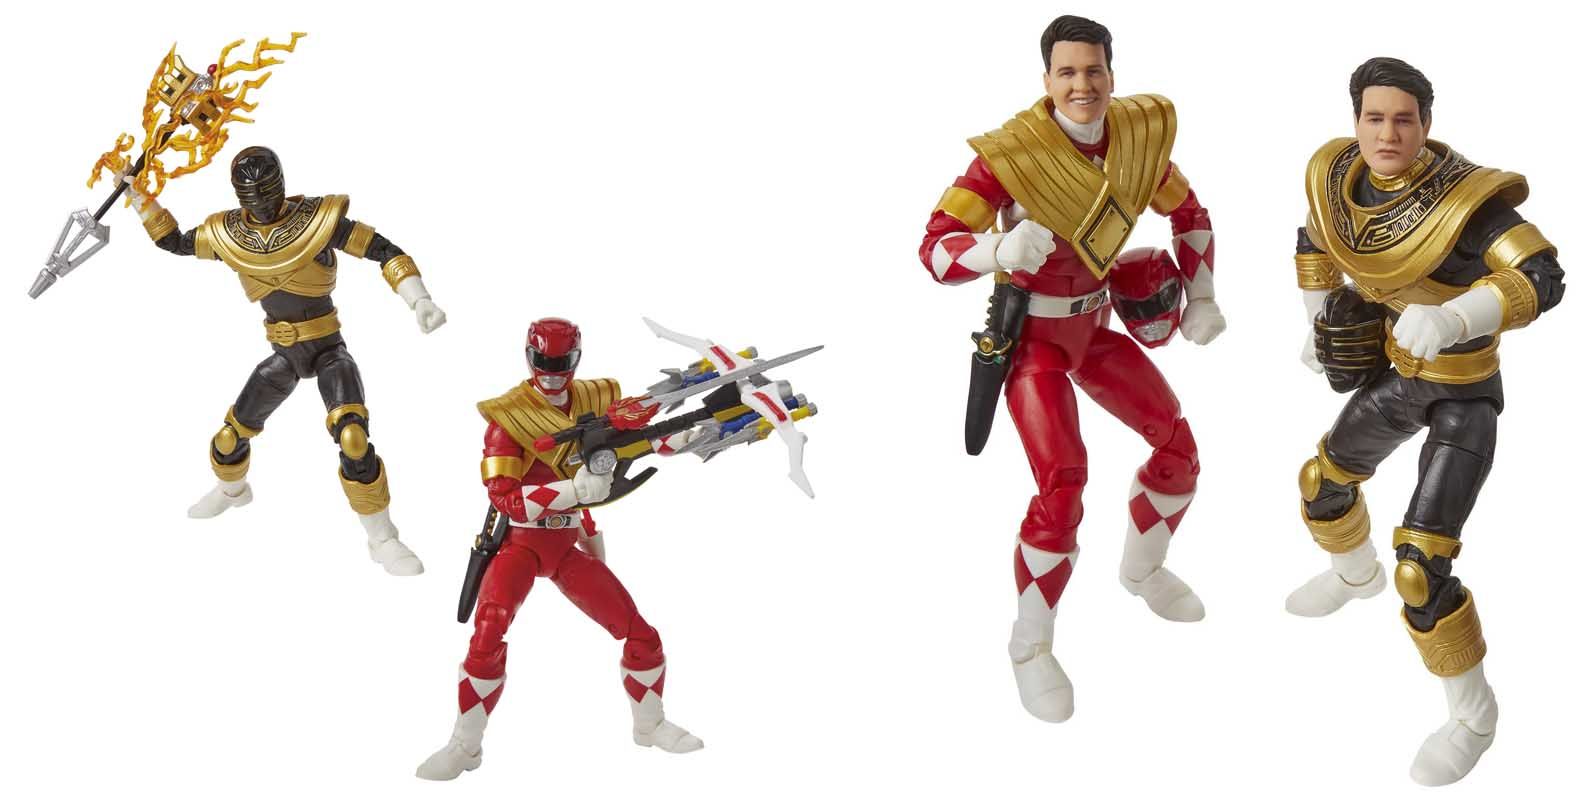 2019年 サンディエゴ・コミコン限定 HASBRO POWER RANGERS LIGHTNING COLLECTION 6インチアクションフィギュア 2PACK MIGHTY MORPHIN RED & ZEO GOLD RANGER